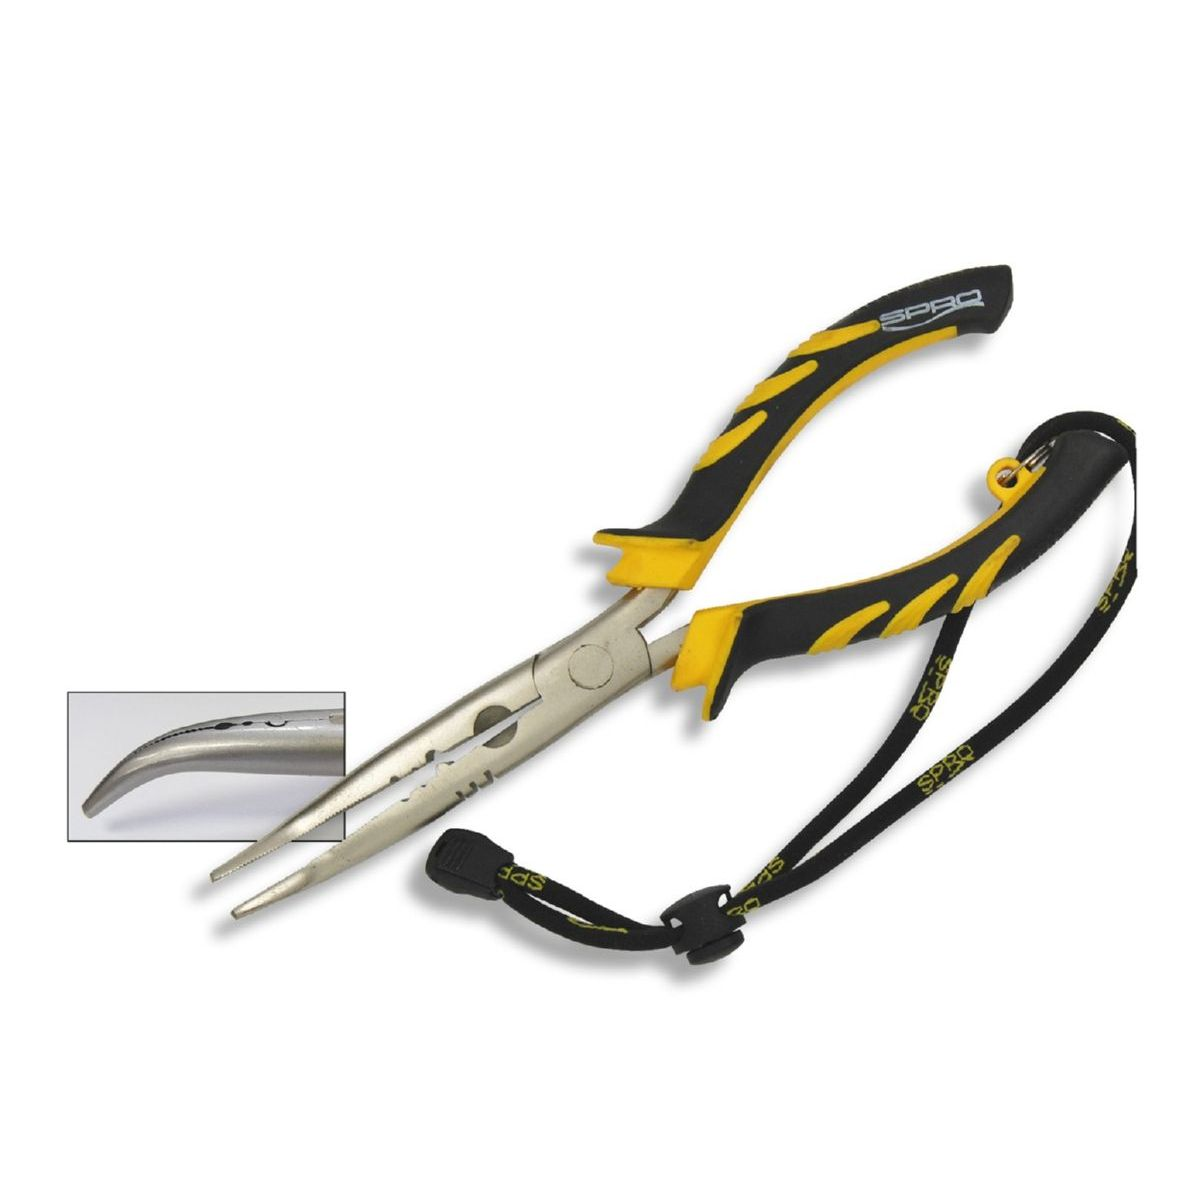 Spro Bent Long Nose Pliers 23